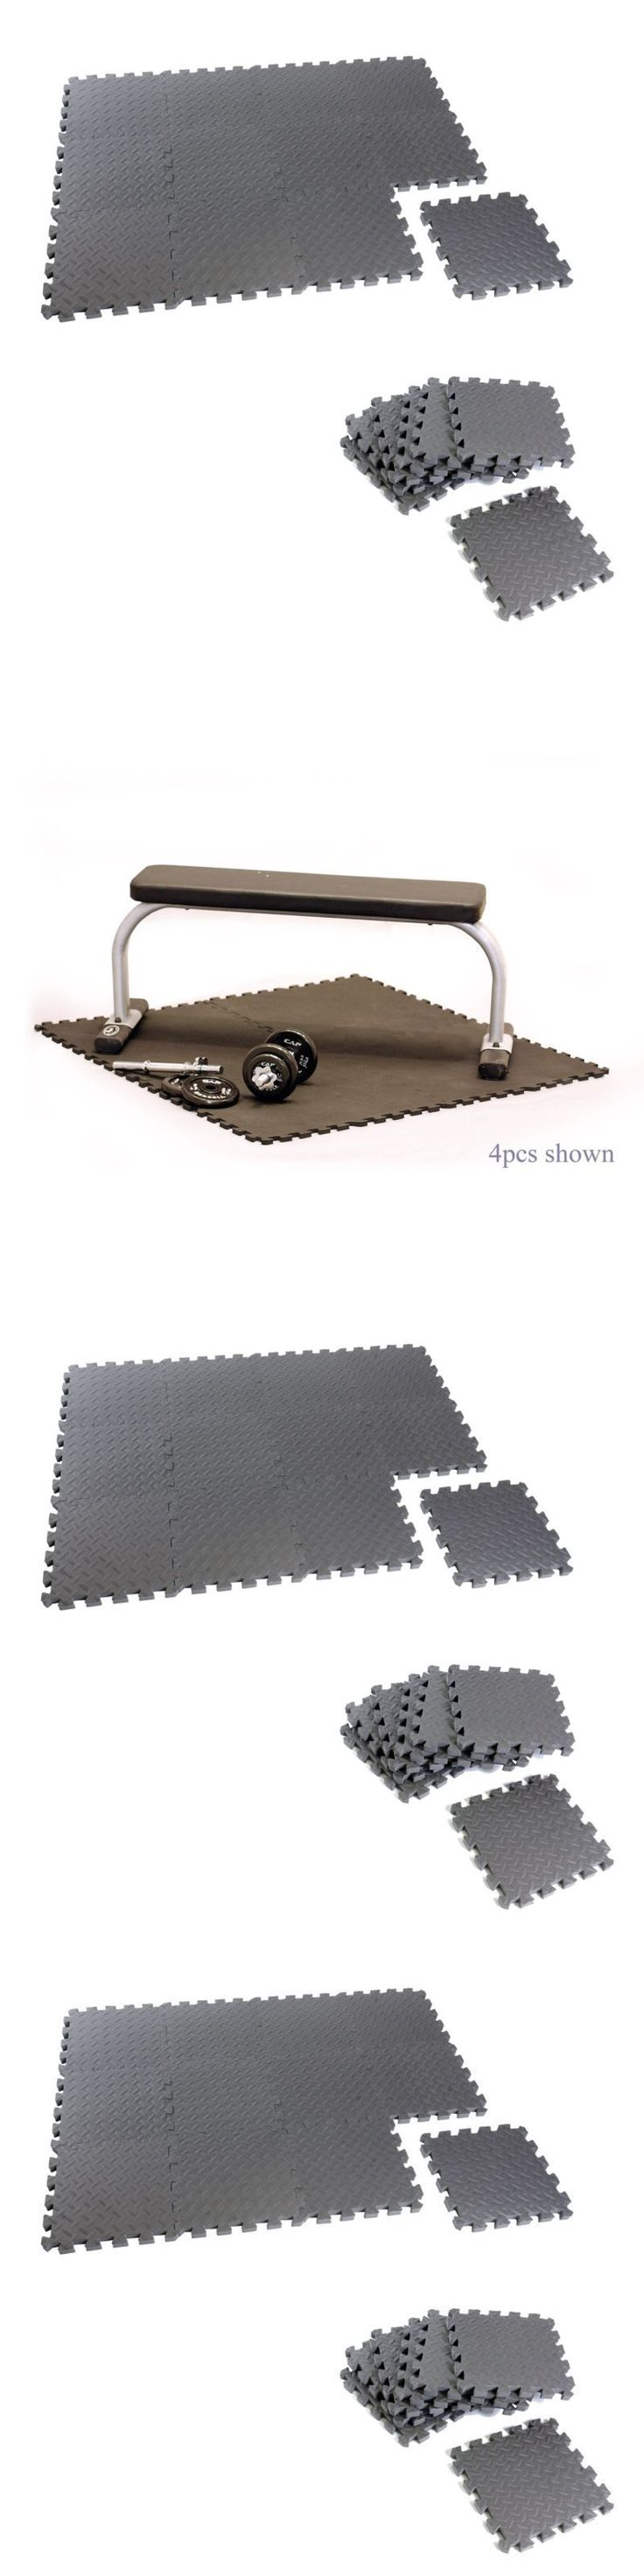 Equipment Mats and Flooring 179806: Equipment Puzzle Mat Floor Interlocking Foam For Yoga Exercise Gym Workout 12Pcs -> BUY IT NOW ONLY: $30.44 on eBay!